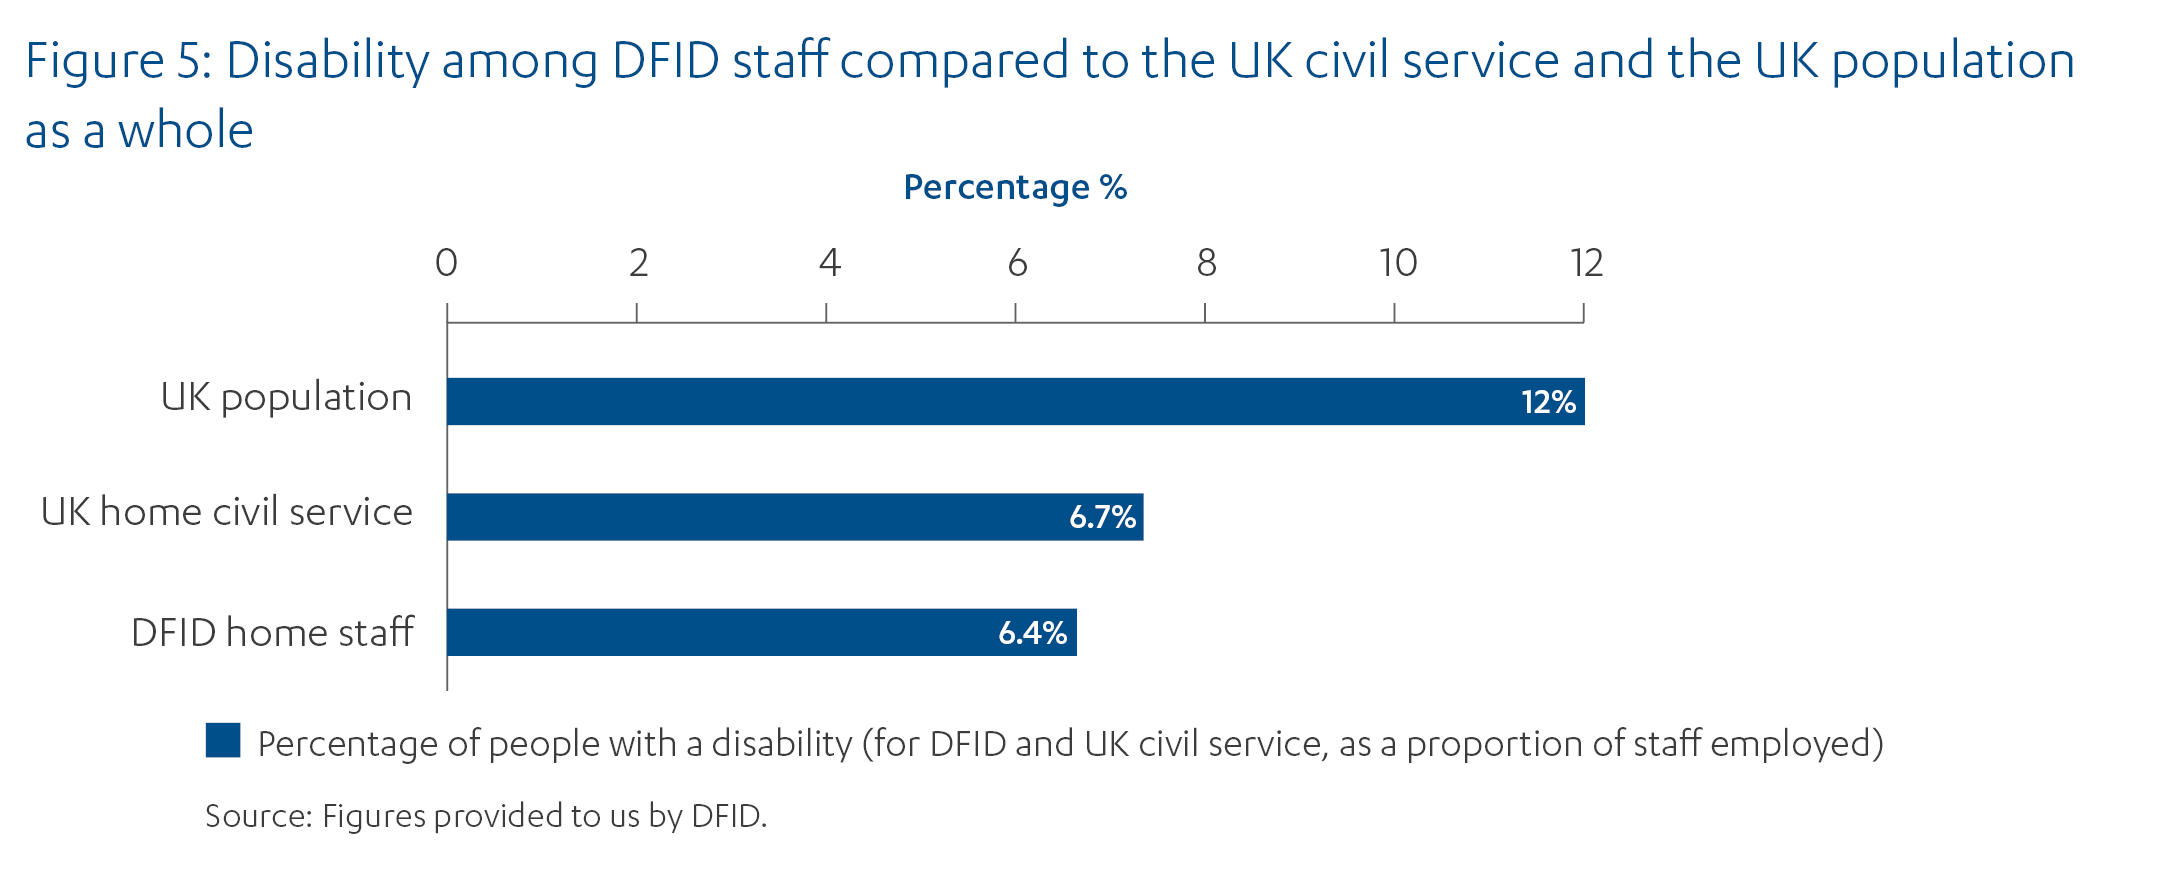 Bar chart showing 6.4% of DFID home staff and 6.7% of UK civil service have a disability, compared to 12% of the UK population.